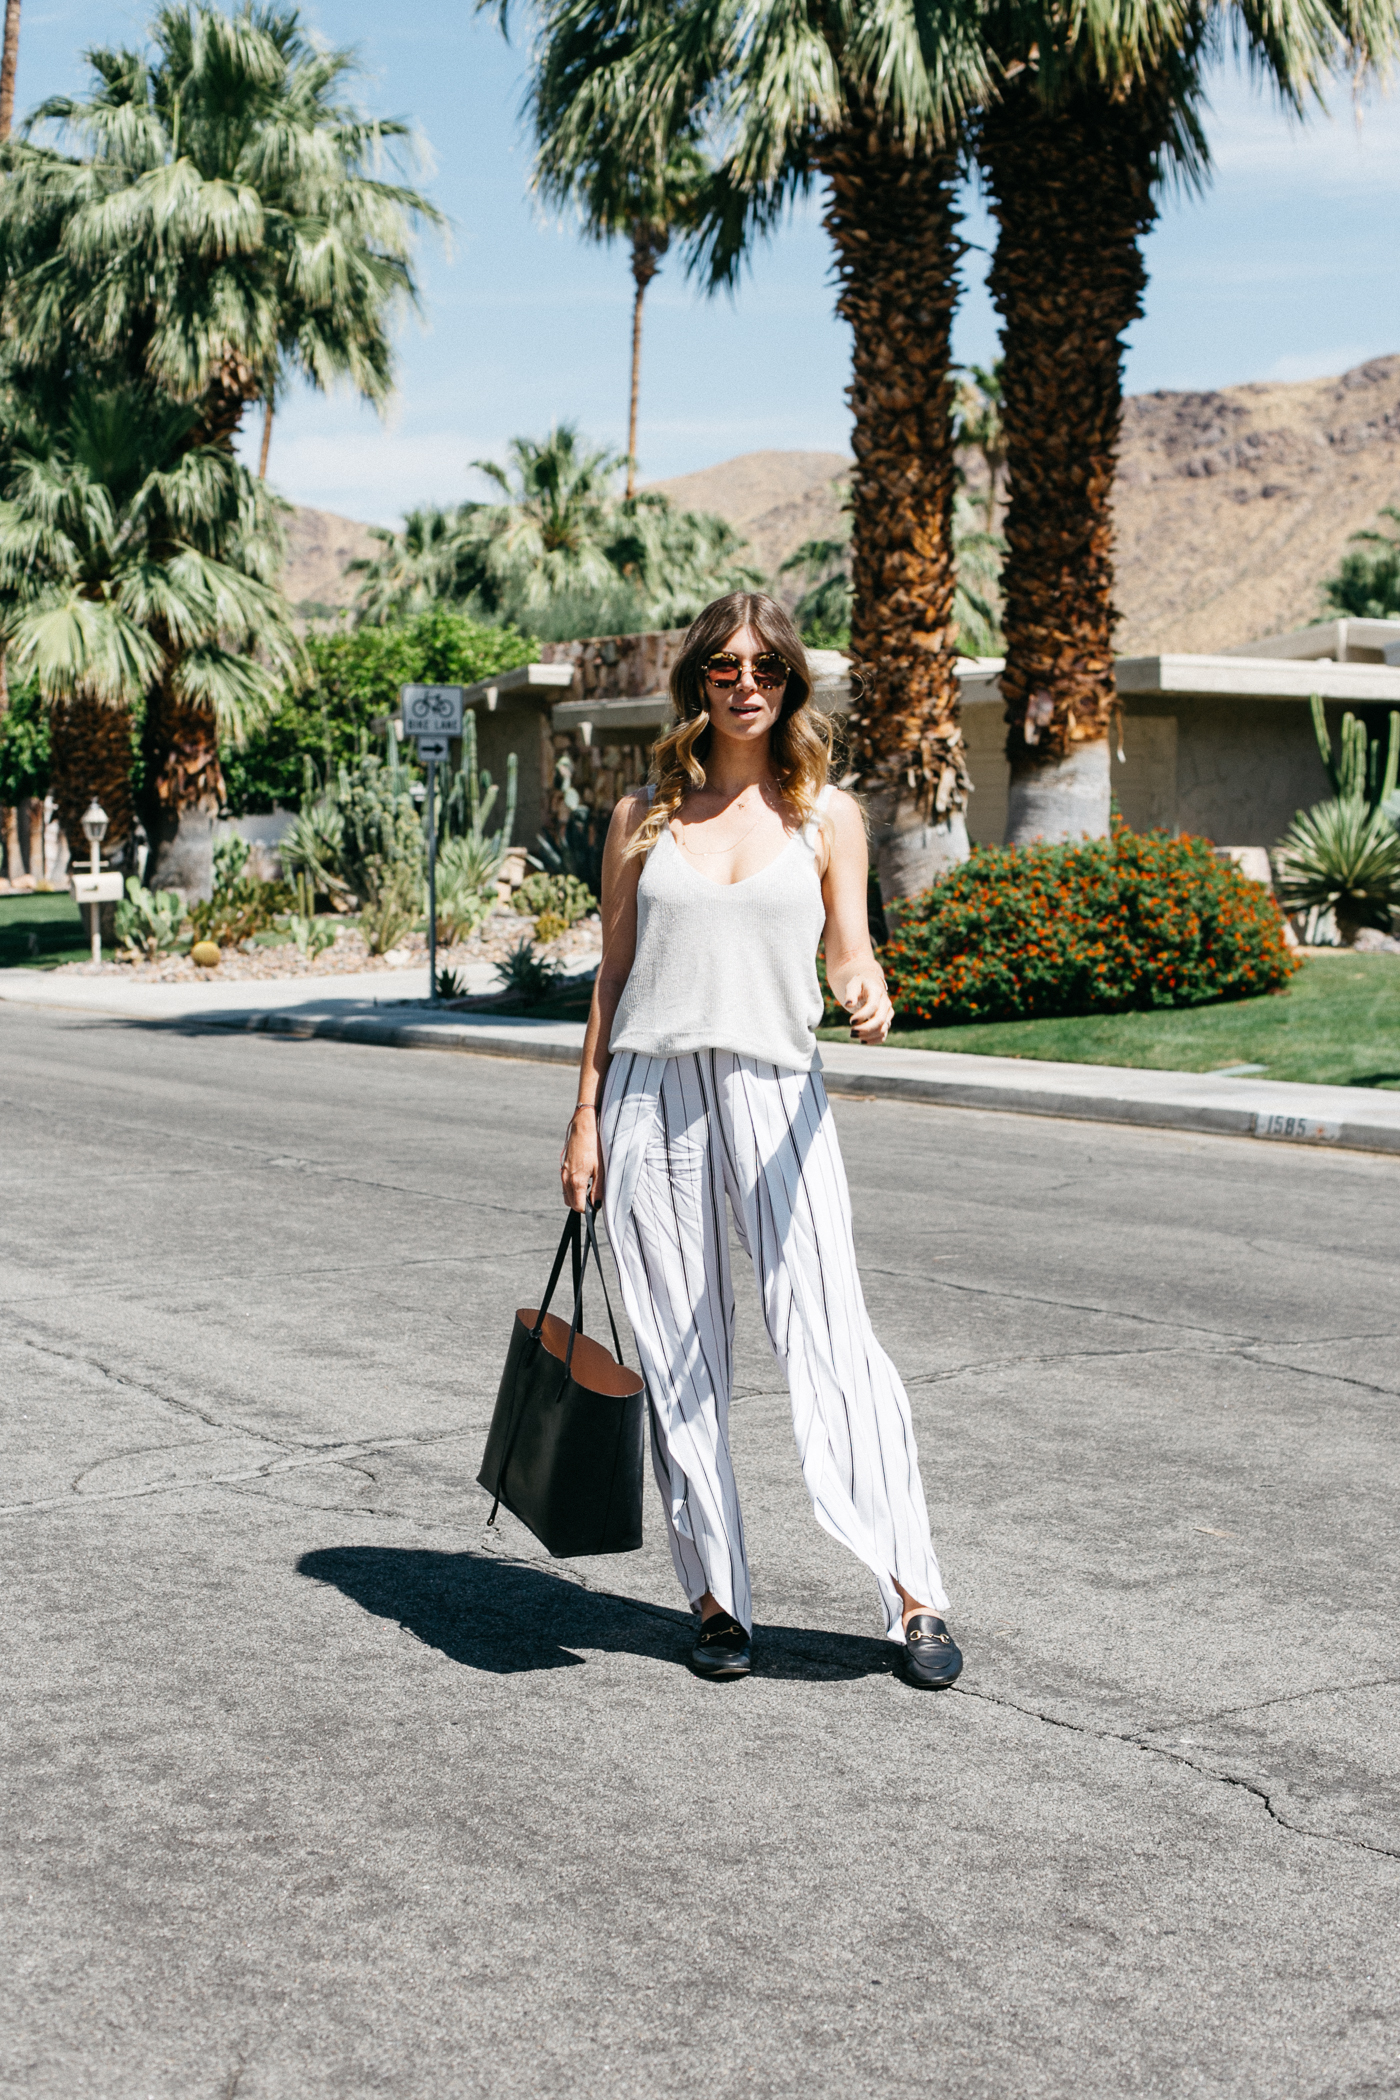 Things To Do In Palm Springs | Bikinis & Passports